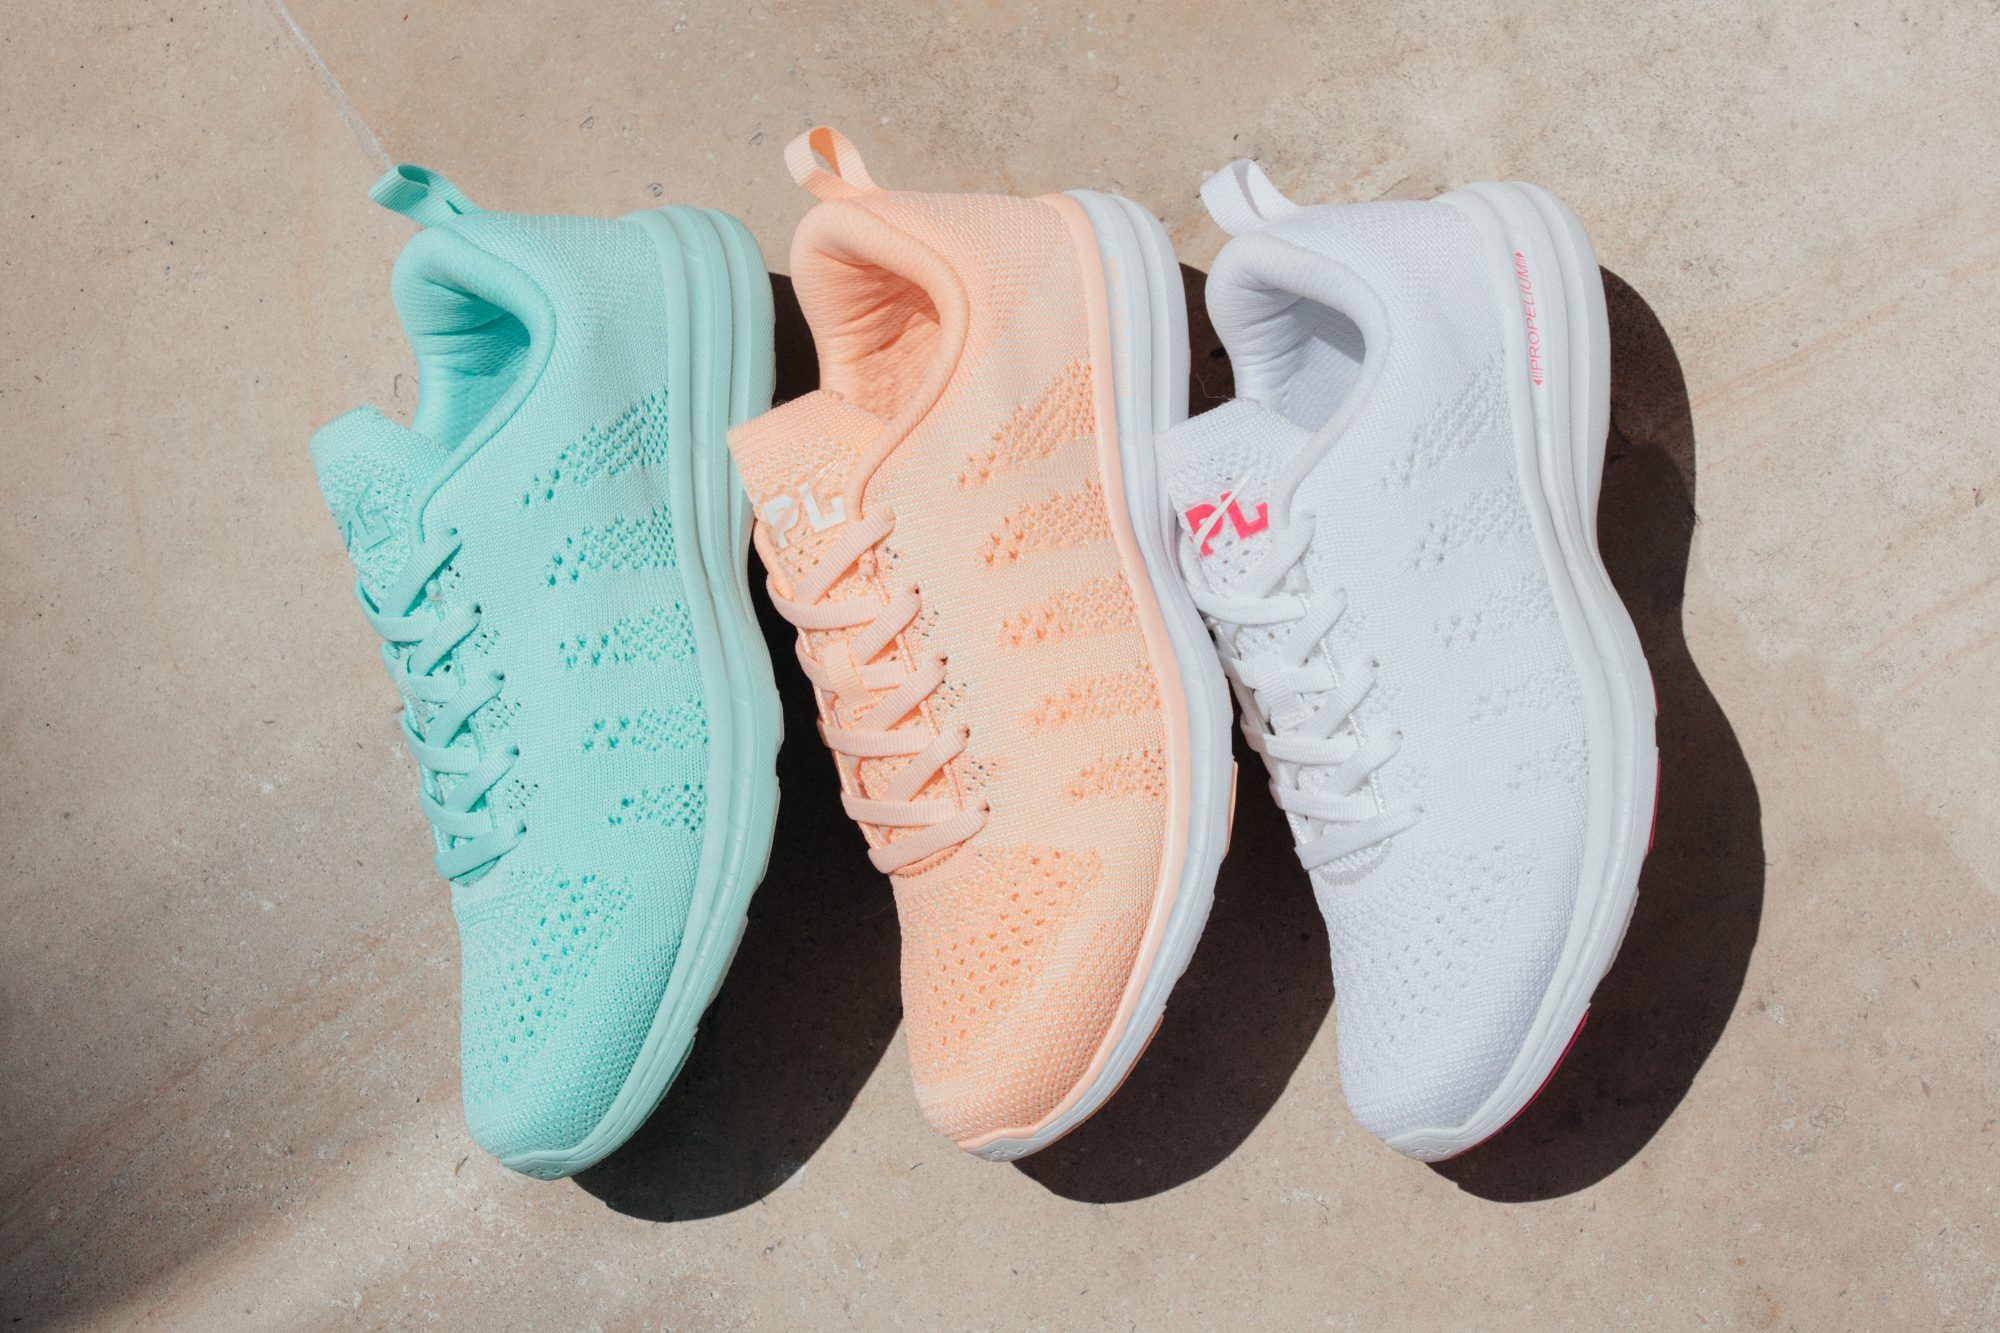 Apl shoes, Apl sneakers, Comfortable